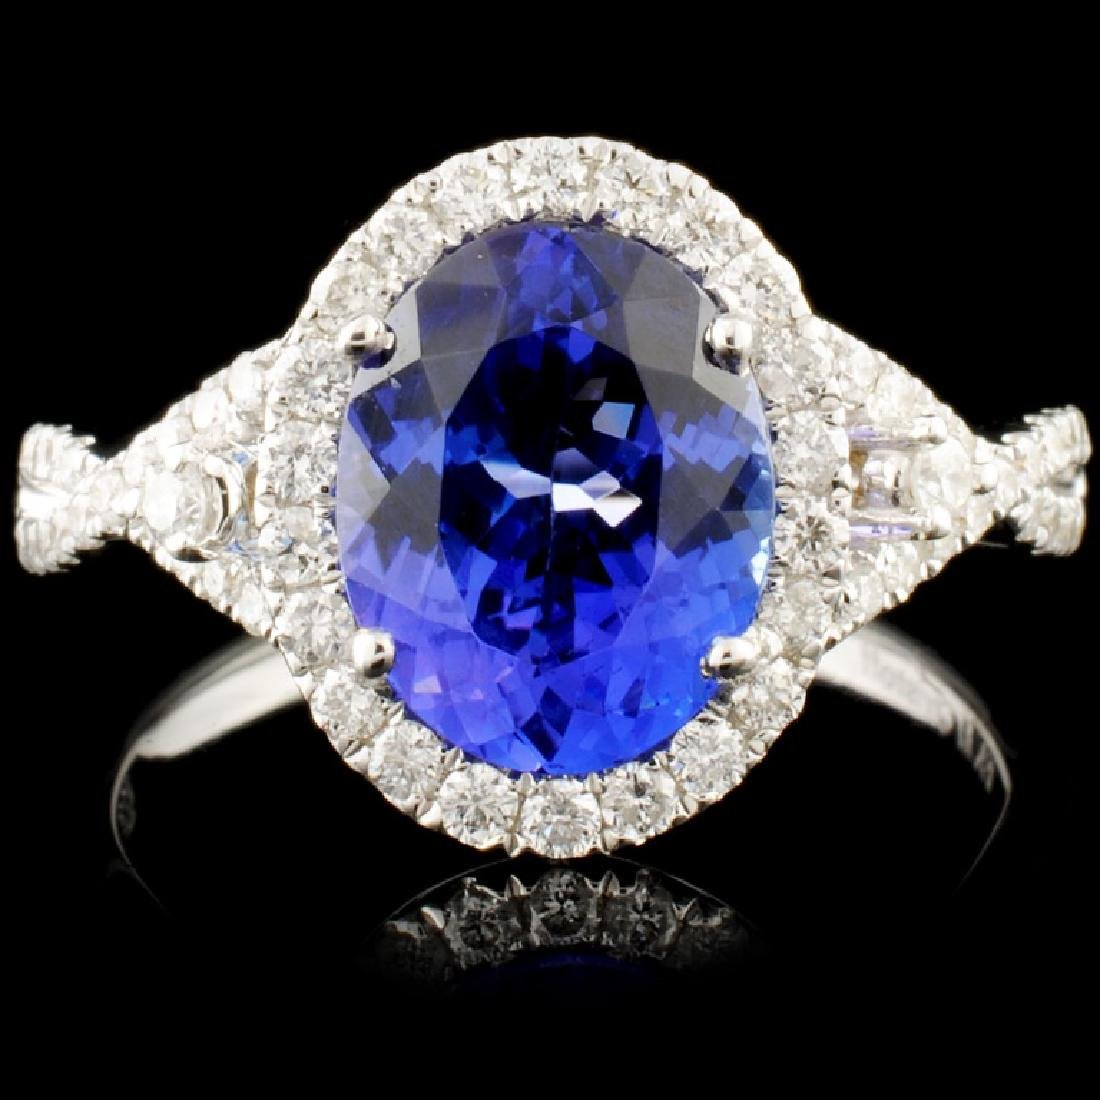 14K Gold 2.35ct Tanzanite & 0.45ctw Diamond Ring